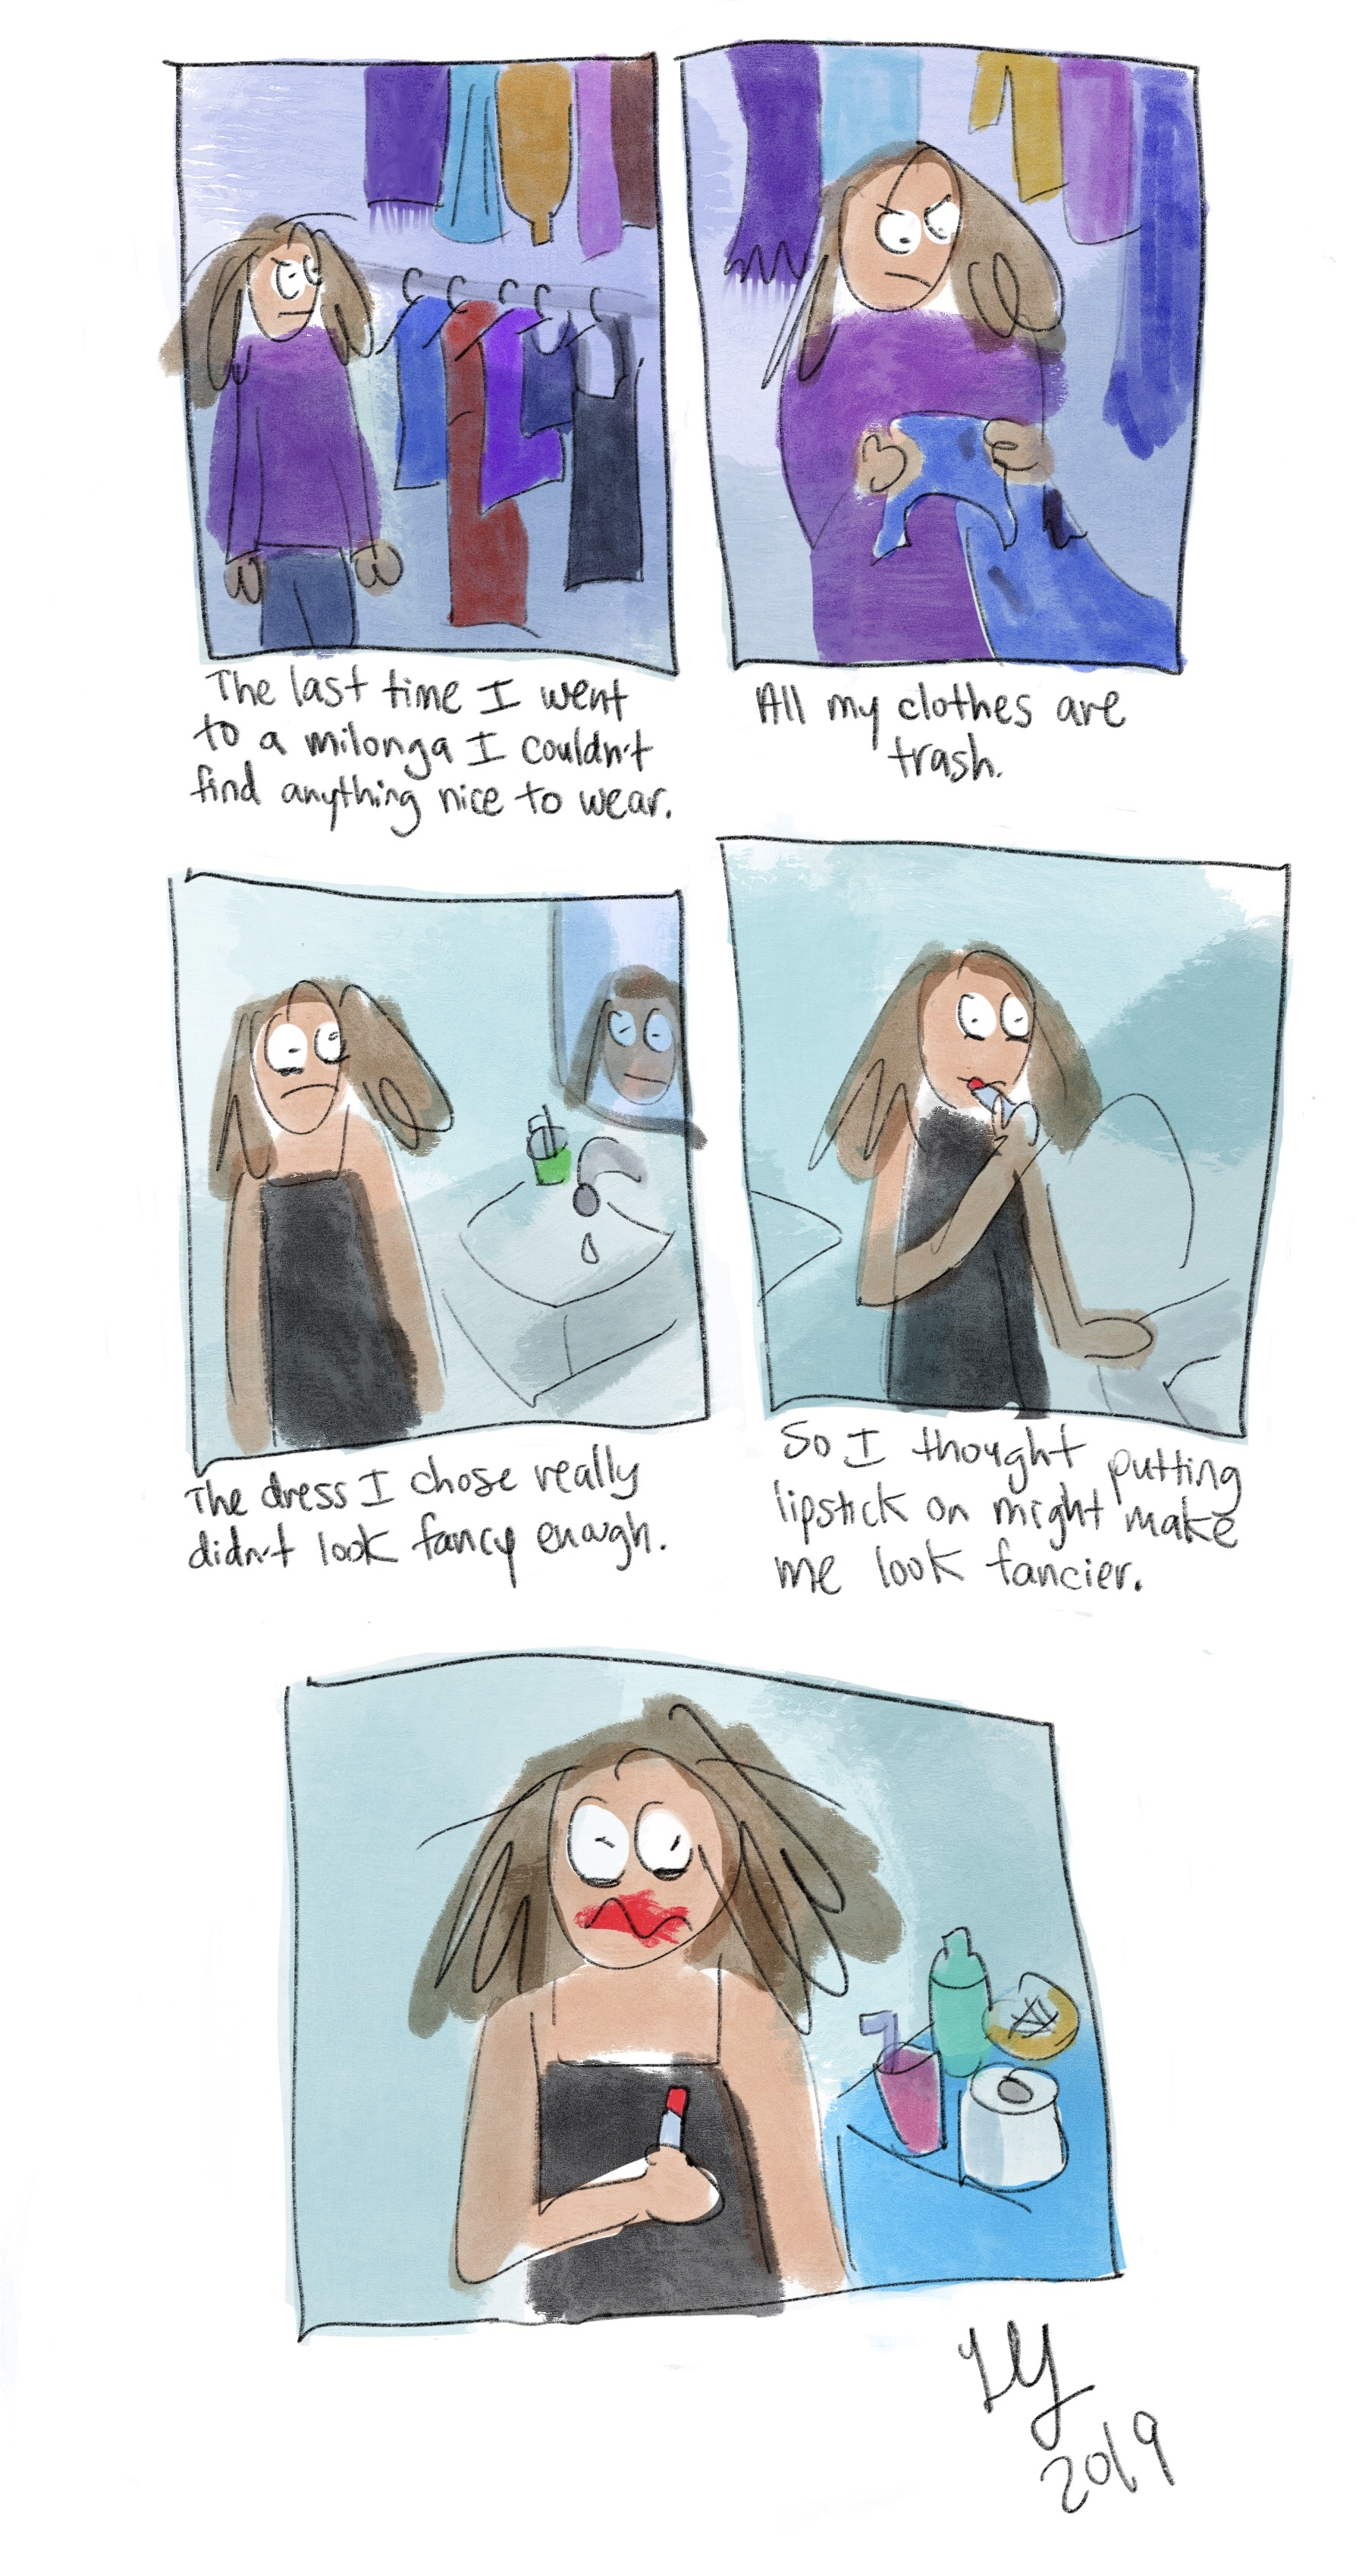 This is a funny comic about how messed up if feels to me when I try to wear make-up.